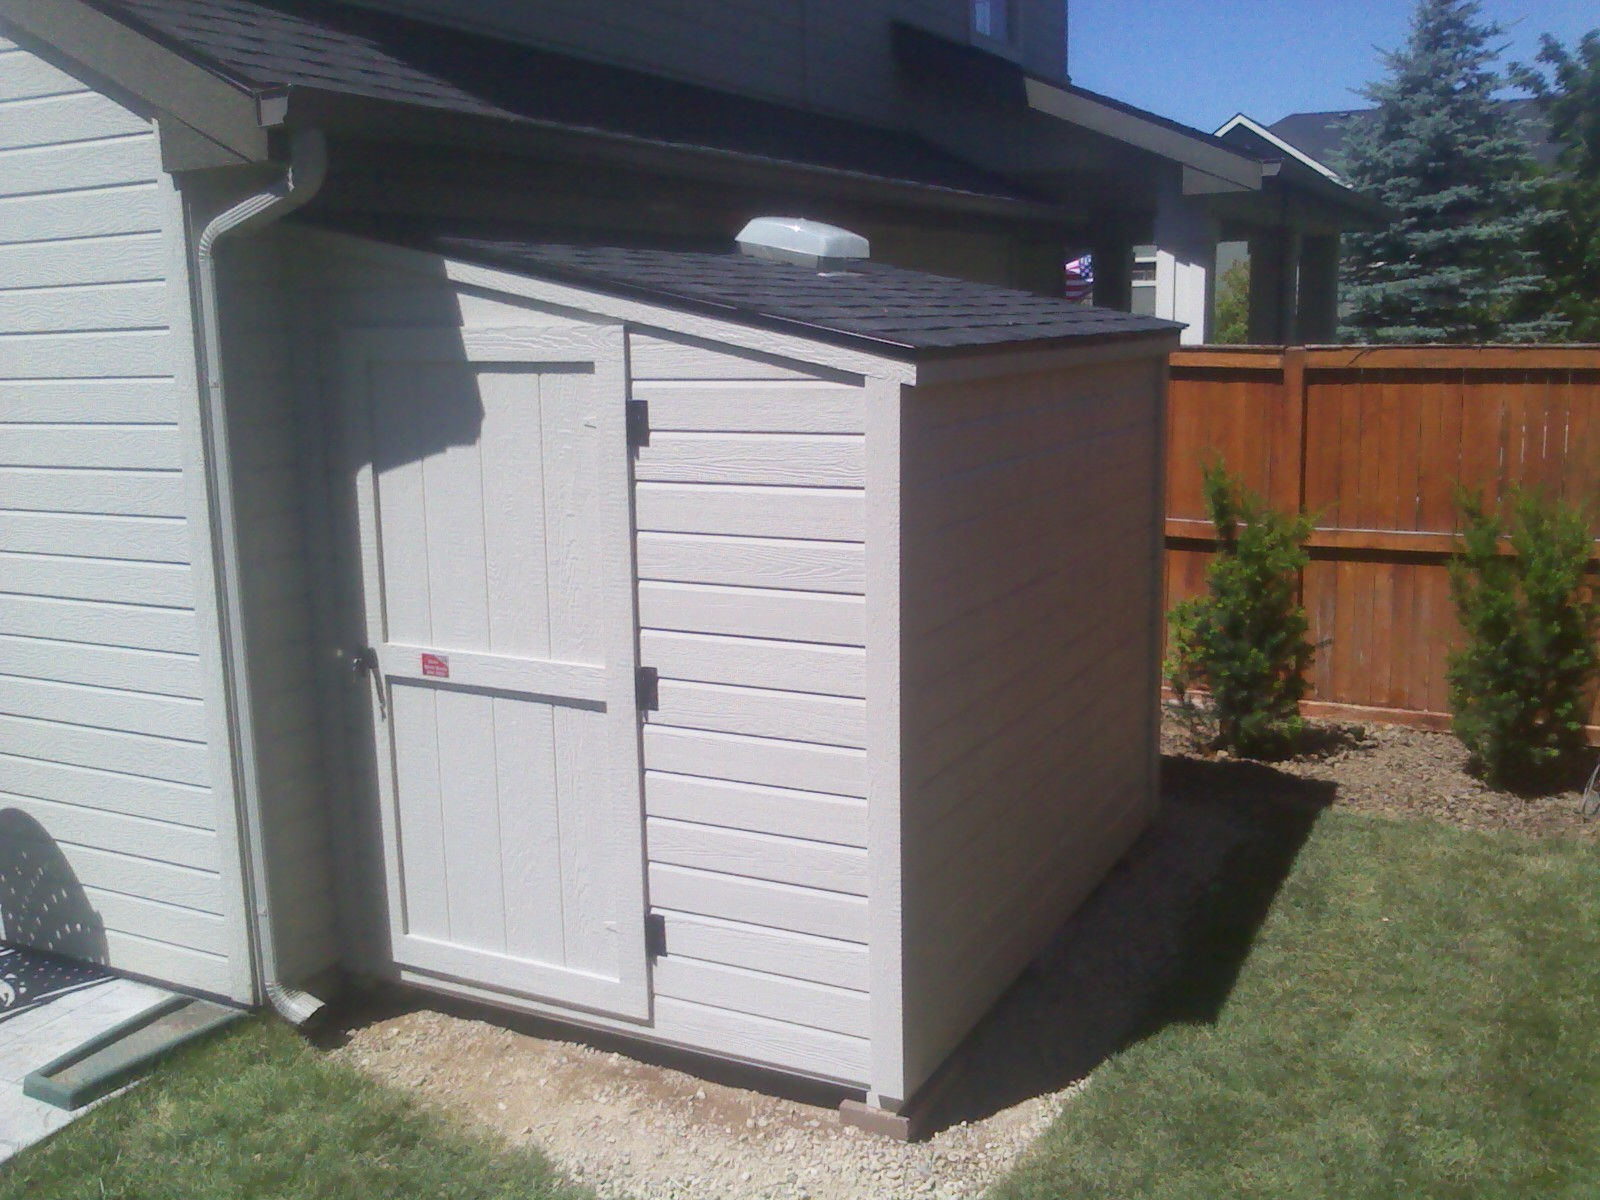 Idaho wood sheds 39 blog good looking sheds built to last for Building a lean to roof on a house